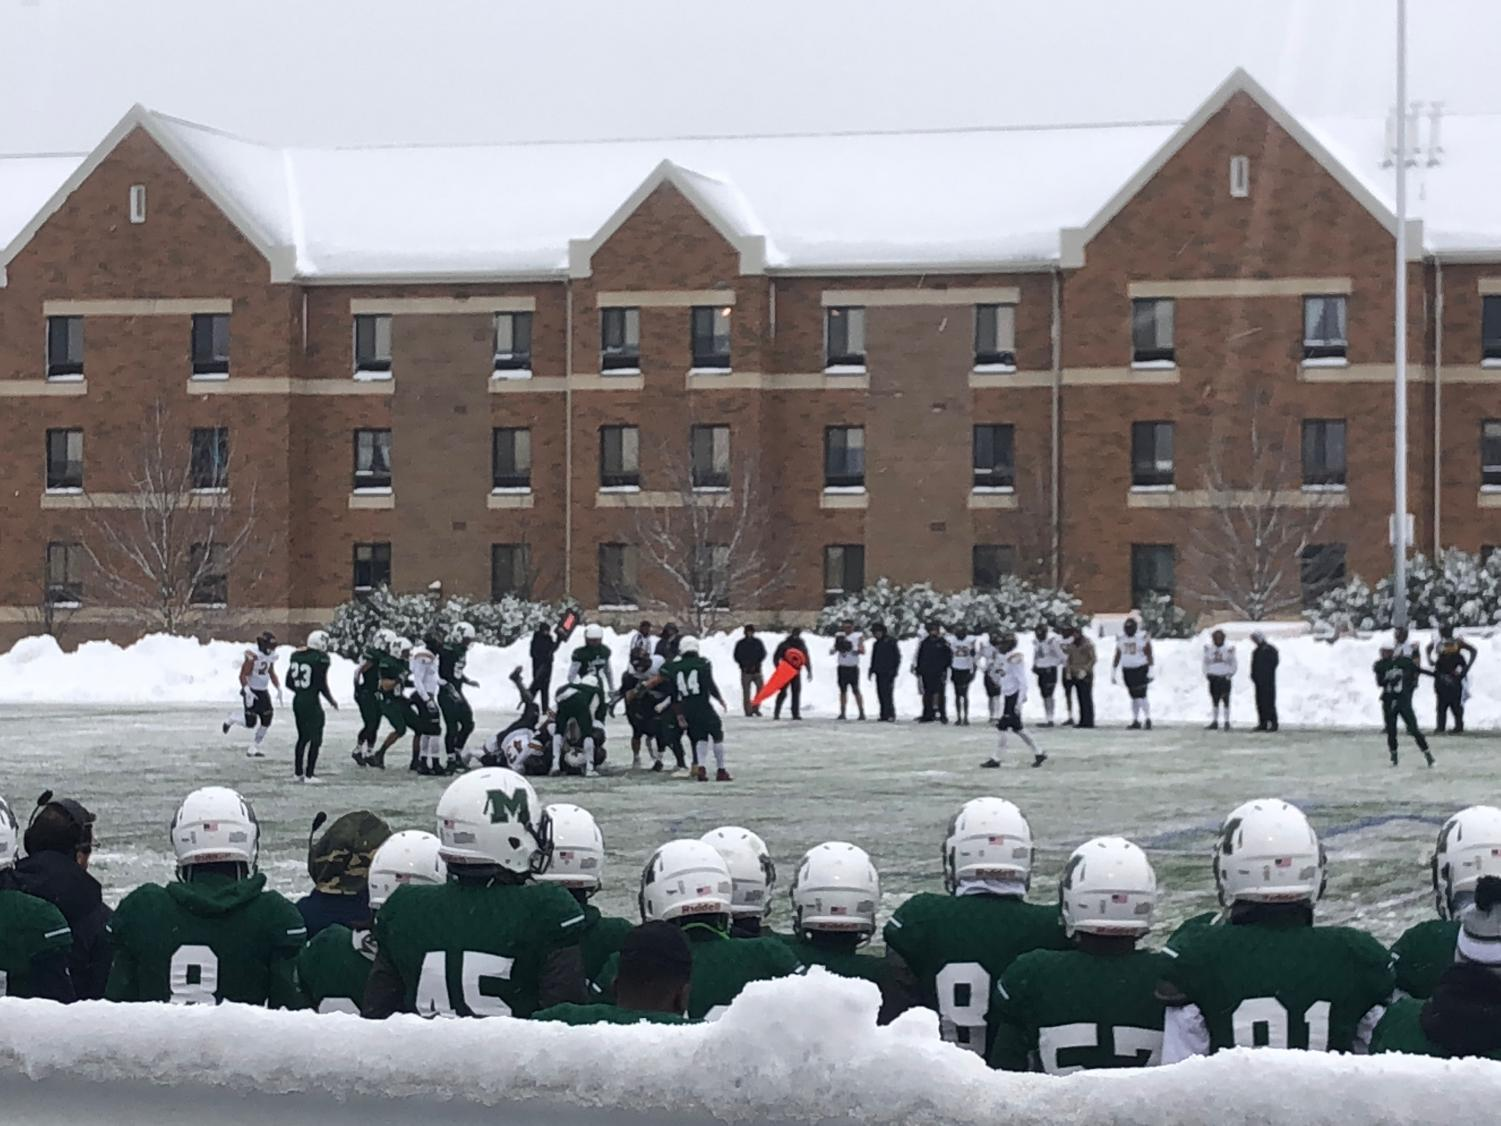 Tullio Field had to be shoveled before the start of the contest Nov. 10.  Snow blanketed everything from the stands to the green itself, which had to be tended throughout the game to keep lines visible.